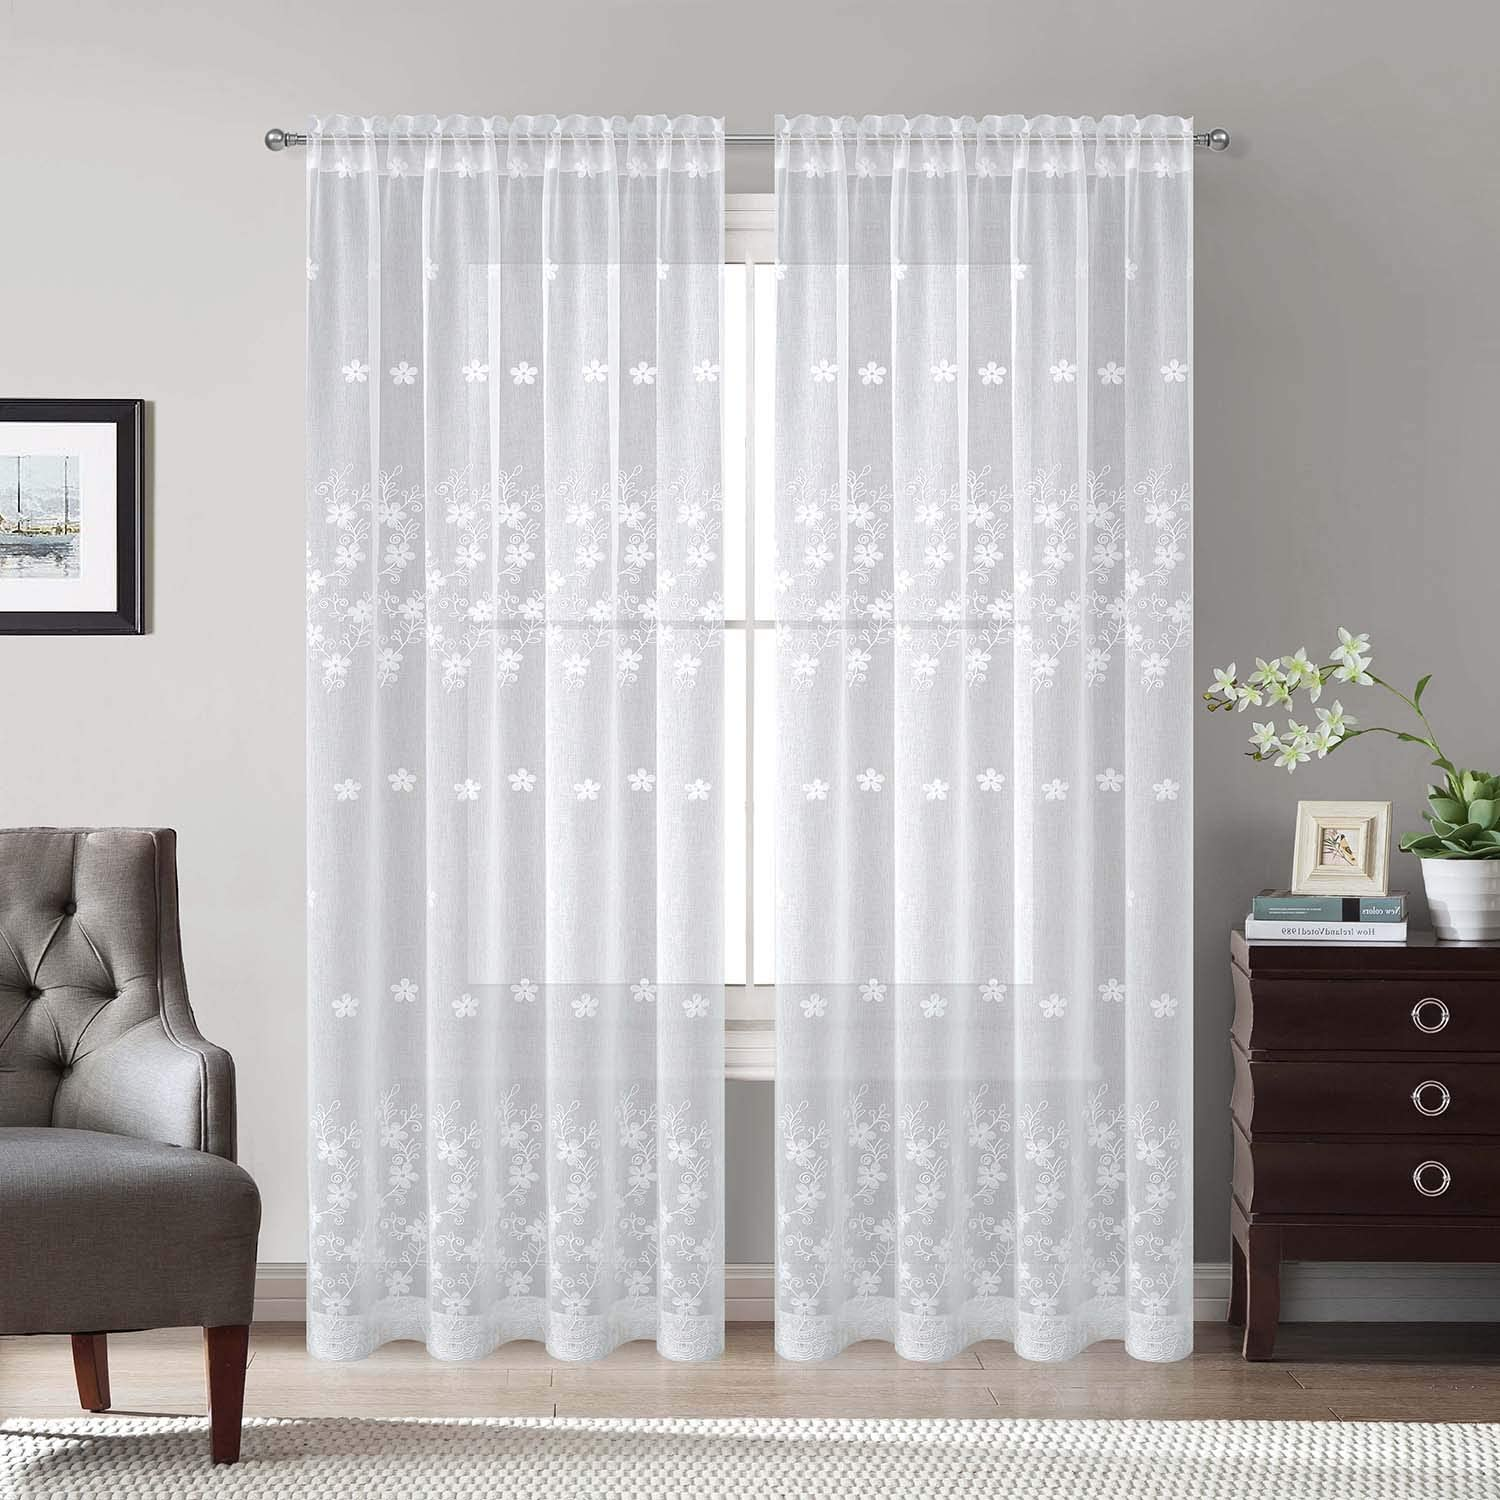 White Rod Pocket Sheer Curtains 106 inches Long, Flowers Embroidered Window Curtain Sheer Voile Panels for Living Room & Bedroom, Set of 2